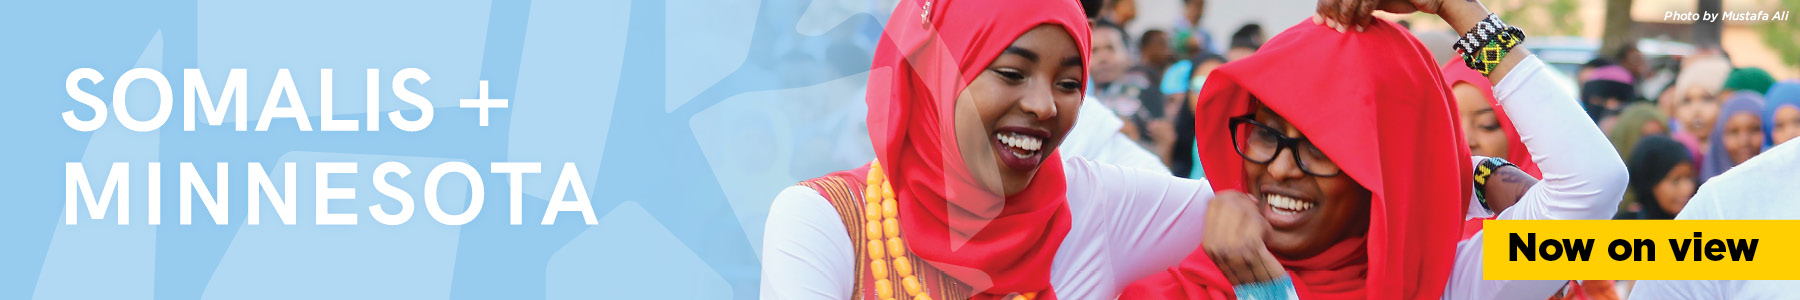 Somalis and Minnesota. Now on view.